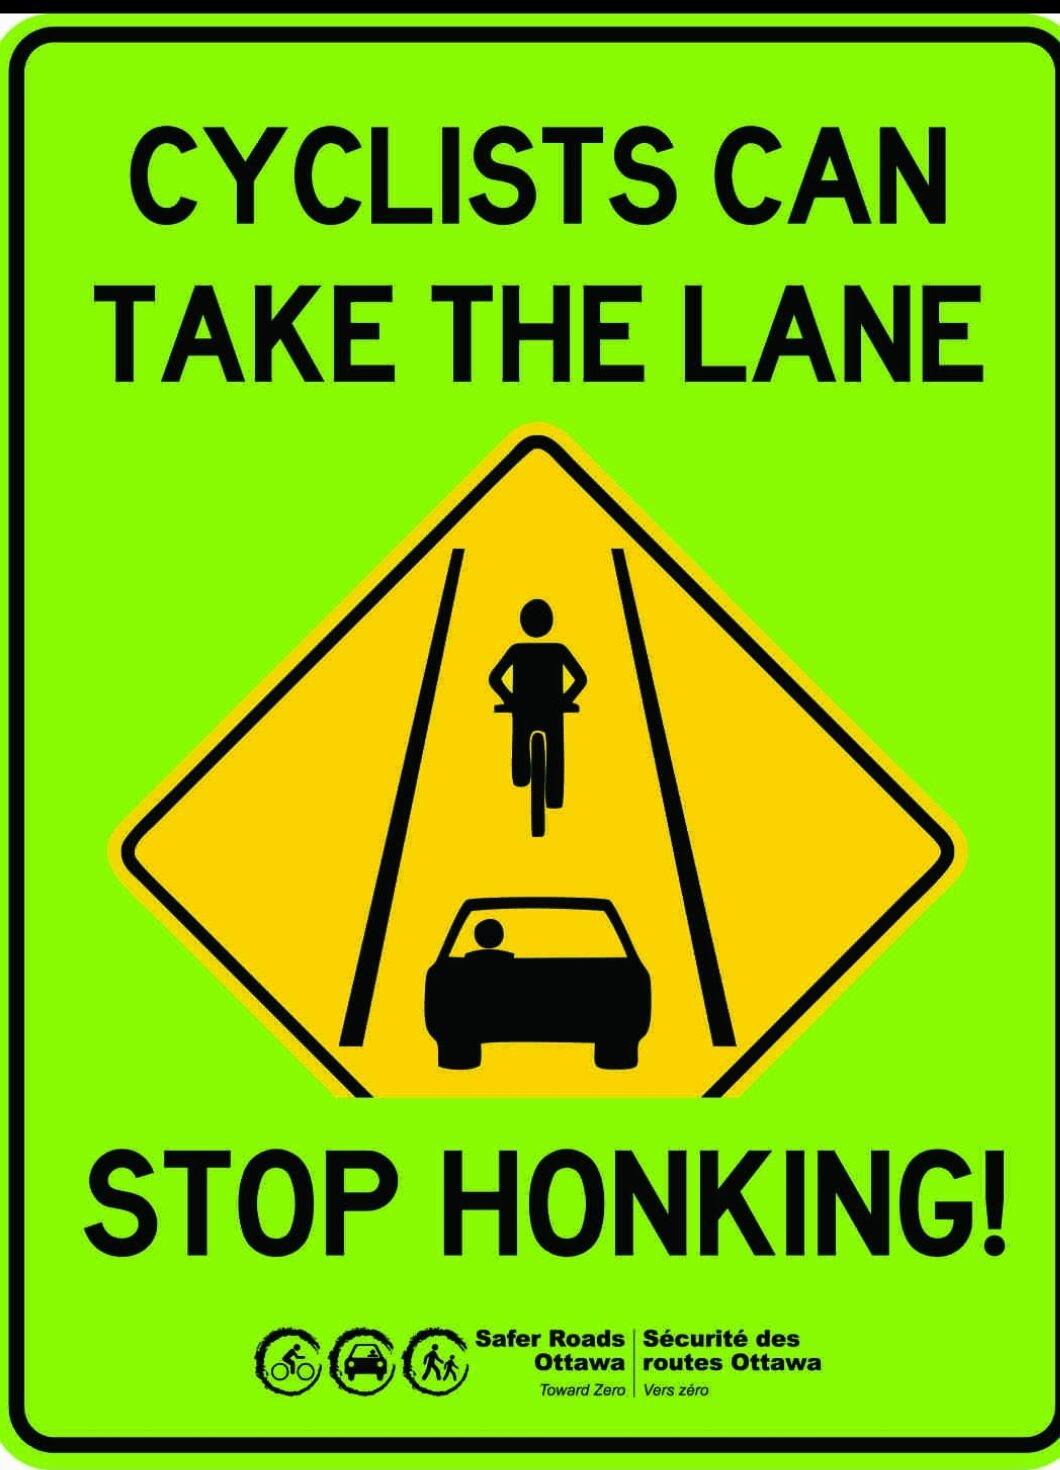 """Road sign showing a yellow diamond with a bicycle and car. Text says: Cyclists can take the lane. Stop honking!"""""""